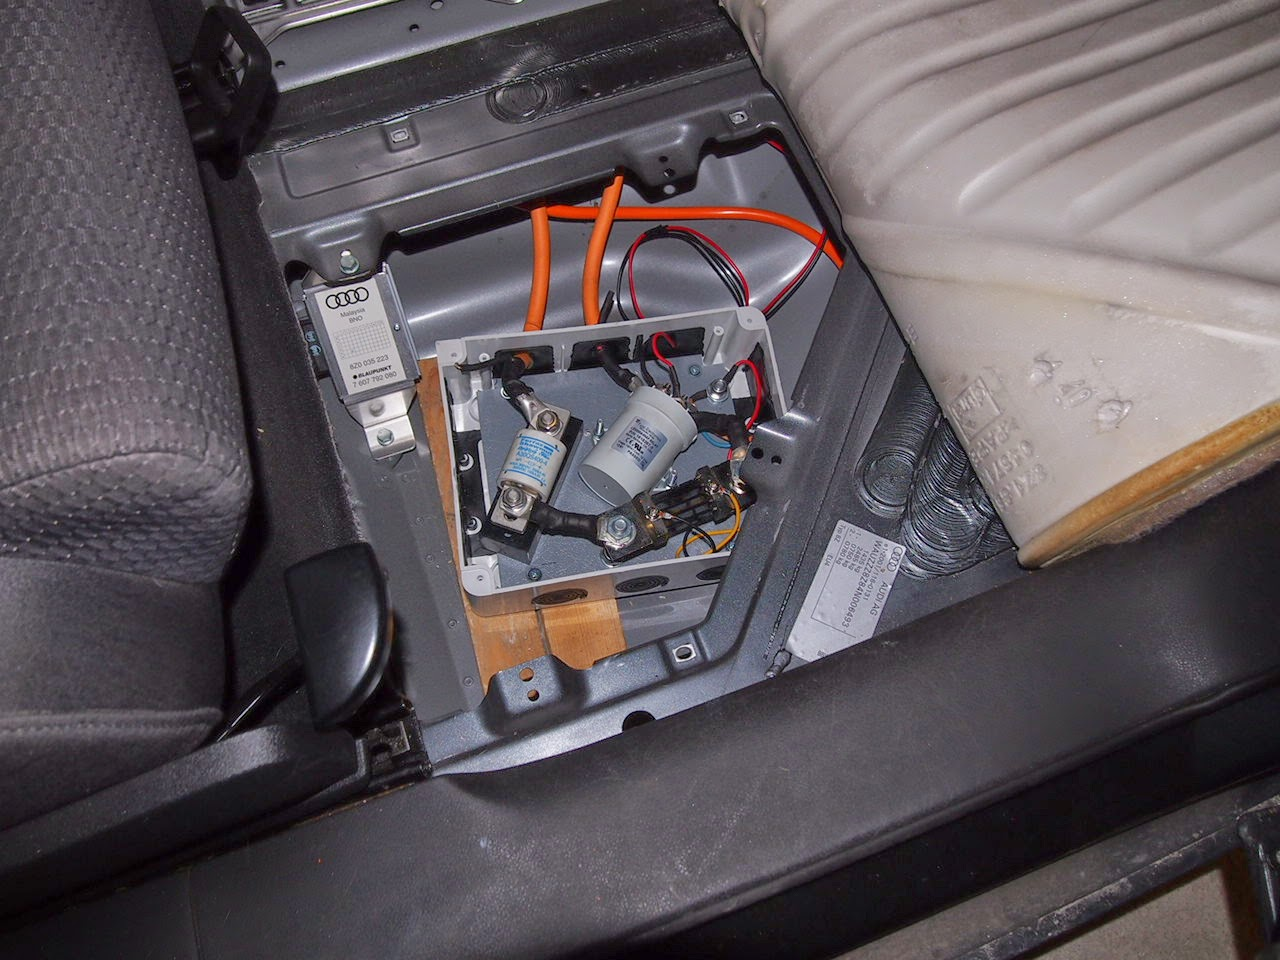 medium resolution of the middle connection box under the passengers feet